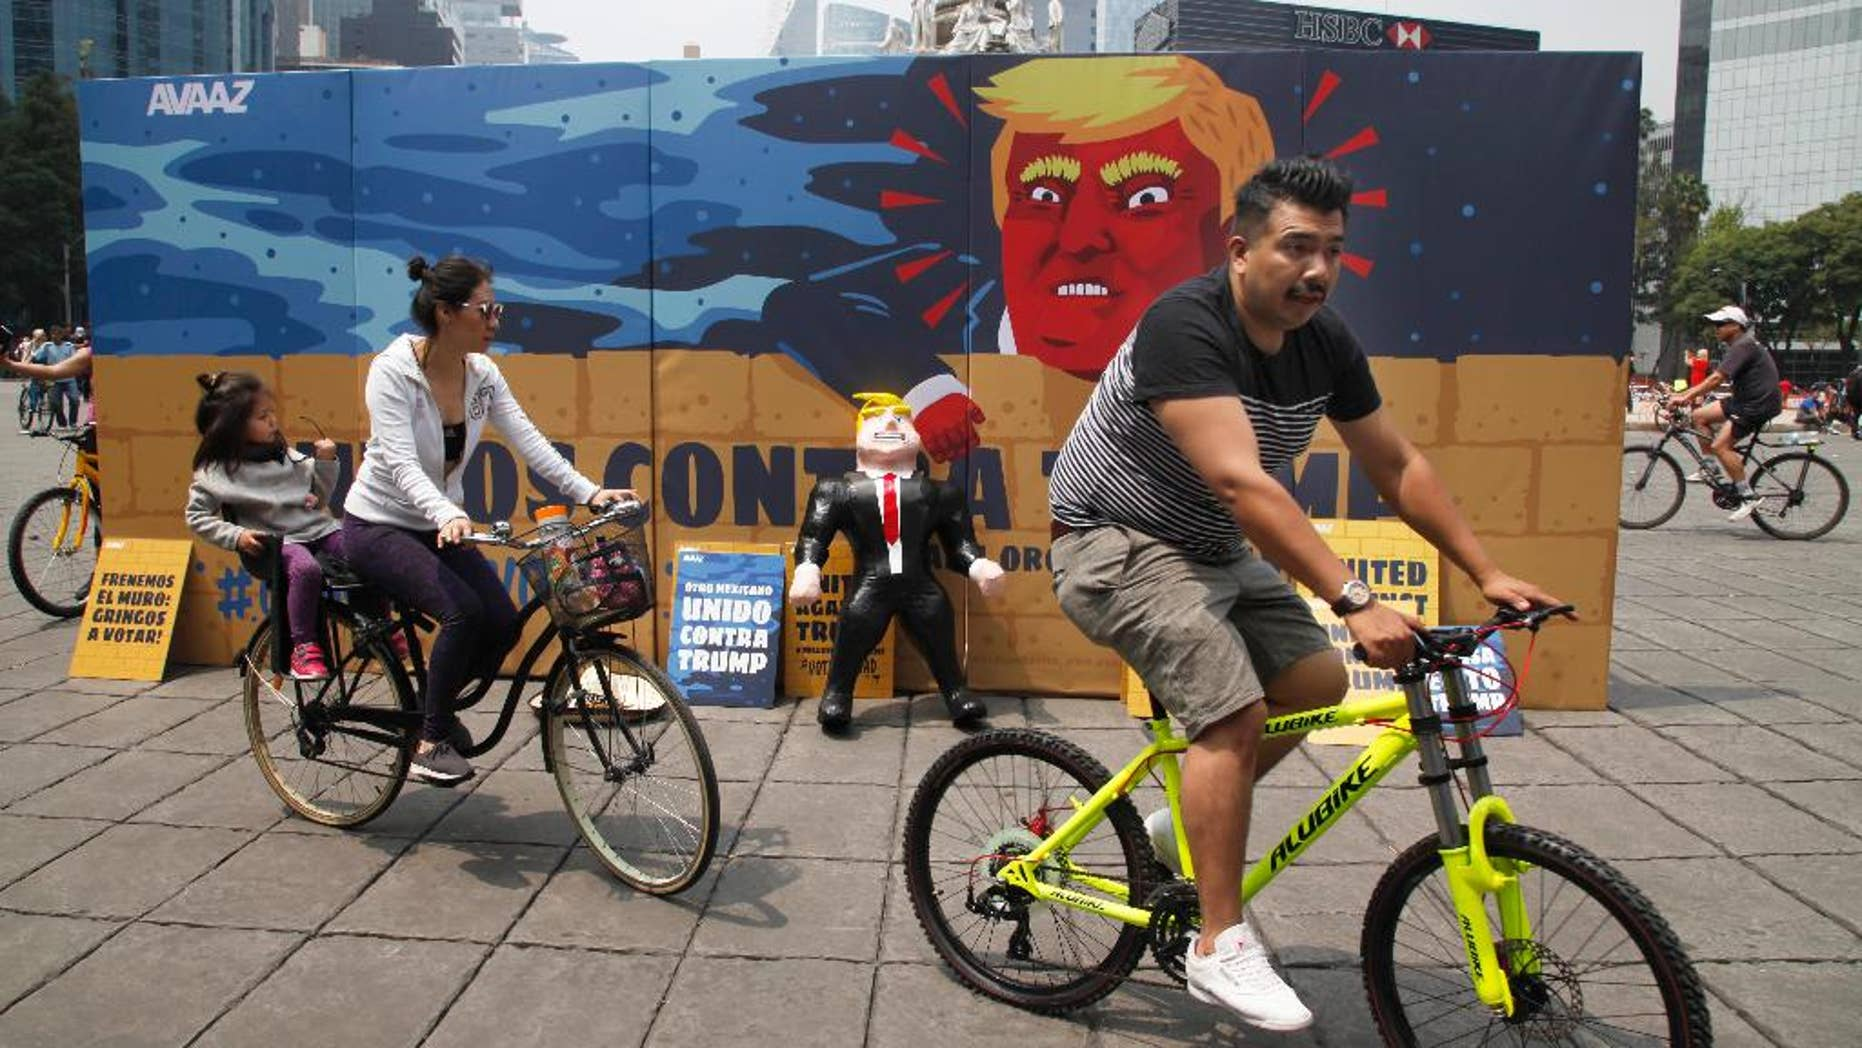 """In this Sunday, Sept. 25, 2016 photo, a family of three ride their bicycles past a piñata depicting U.S. Republican presidential nominee Donald Trump propped against a cardboard mural wall with a message in Spanish that reads; """"United against Trump"""" at the Angel of  Independence monument in Mexico City.  The head of Mexico's central bank told the Radio Formula network Friday, Sept. 30, 2016, that a Trump presidency """"would be a hurricane and a particularly intense one if he fulfills what he has been saying in his campaign.""""  (AP Photo/Marco Ugarte)"""